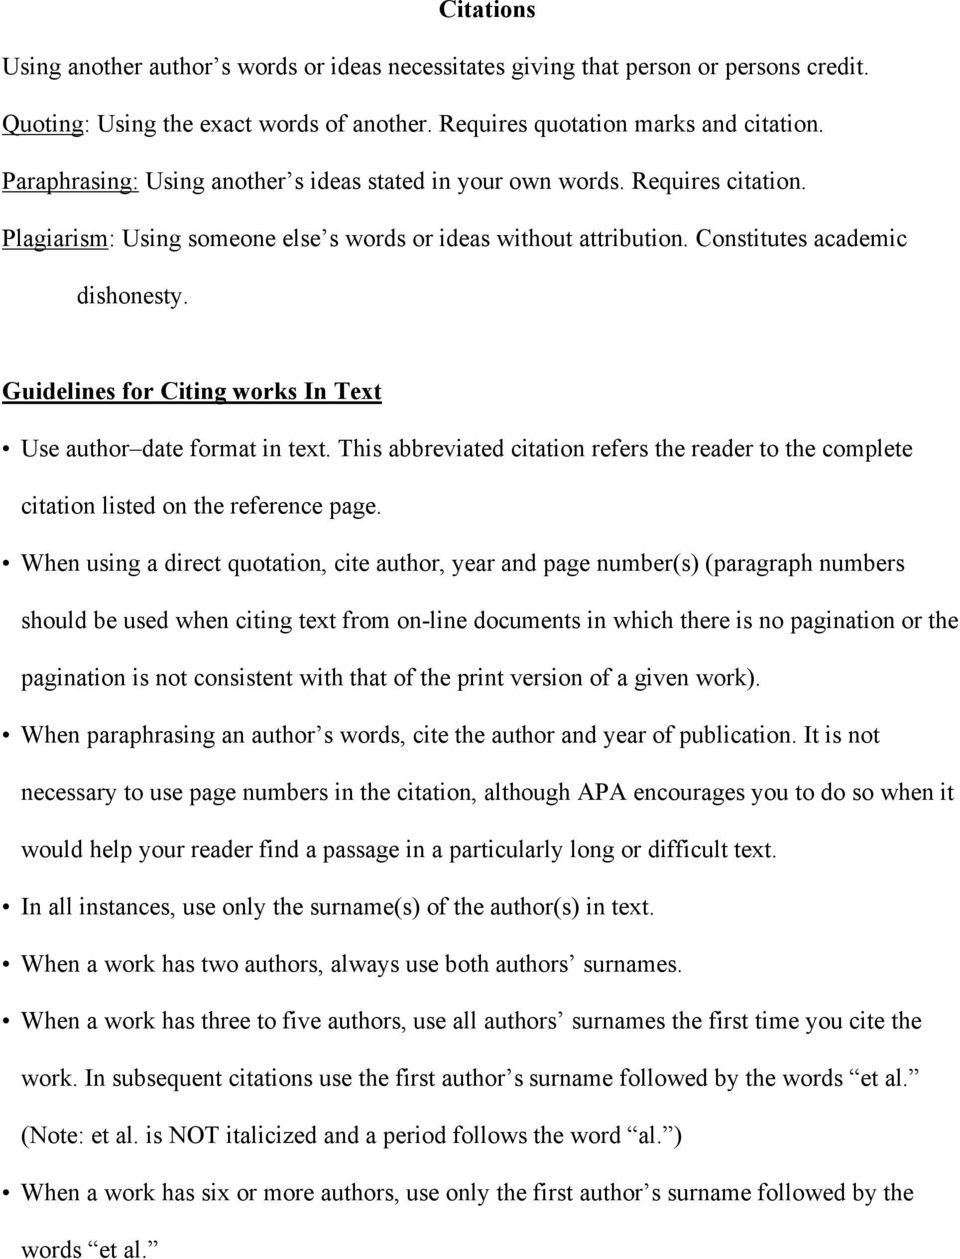 Guidelines for Citing works In Text Use author date format in text. This abbreviated citation refers the reader to the complete citation listed on the reference page.